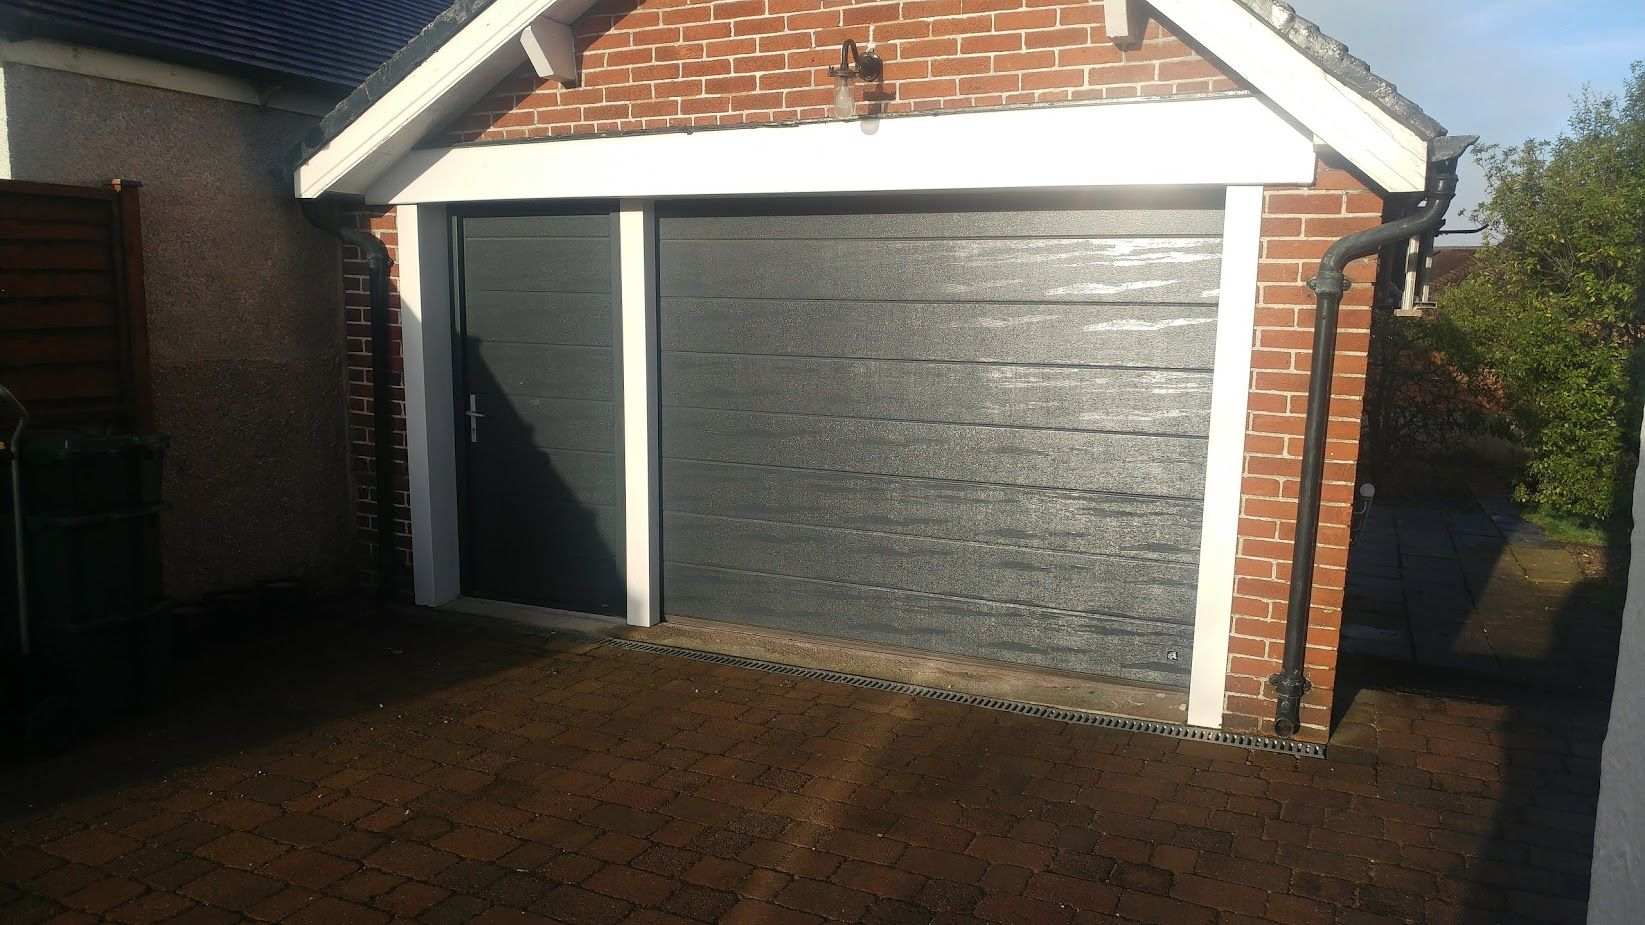 Photo Gallery Of Our Completed Garage Door Installation Projects Garage Doors Garage Door Styles Garage Door Colors